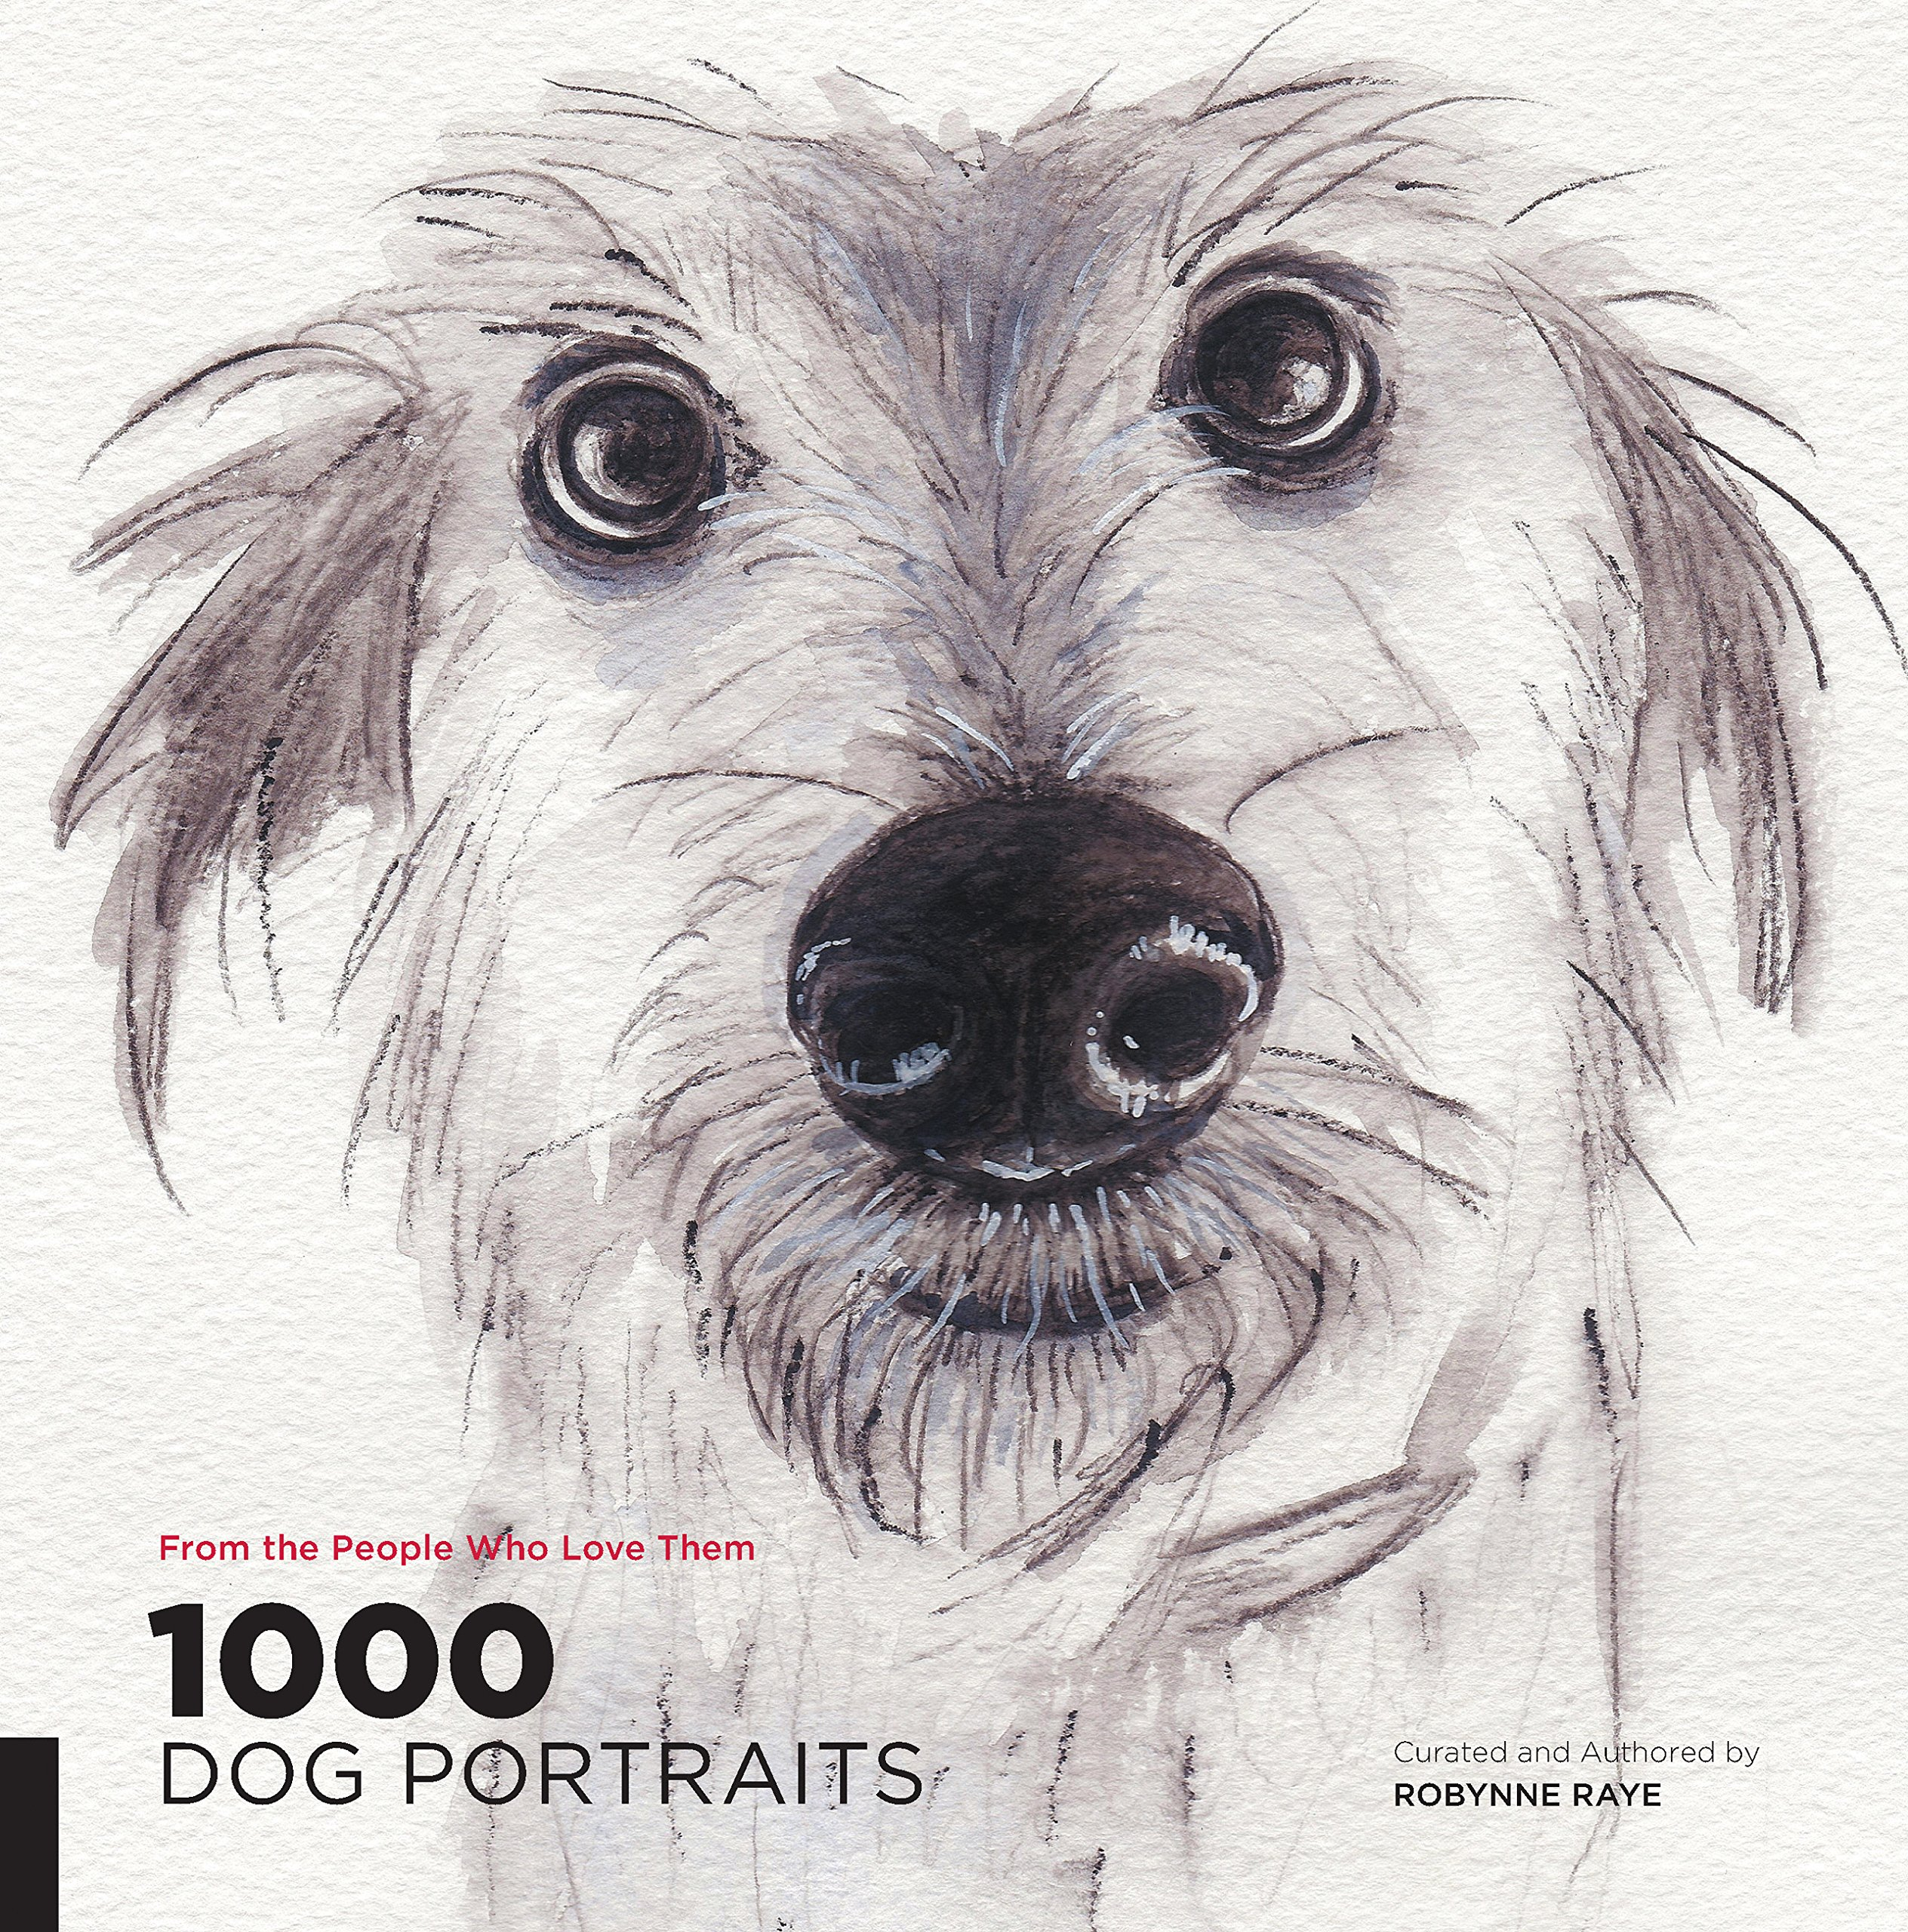 1000 Dog Portraits: From the People Who Love Them (1000 Series): Robynne  Raye: 9781592539017: Amazon.com: Books